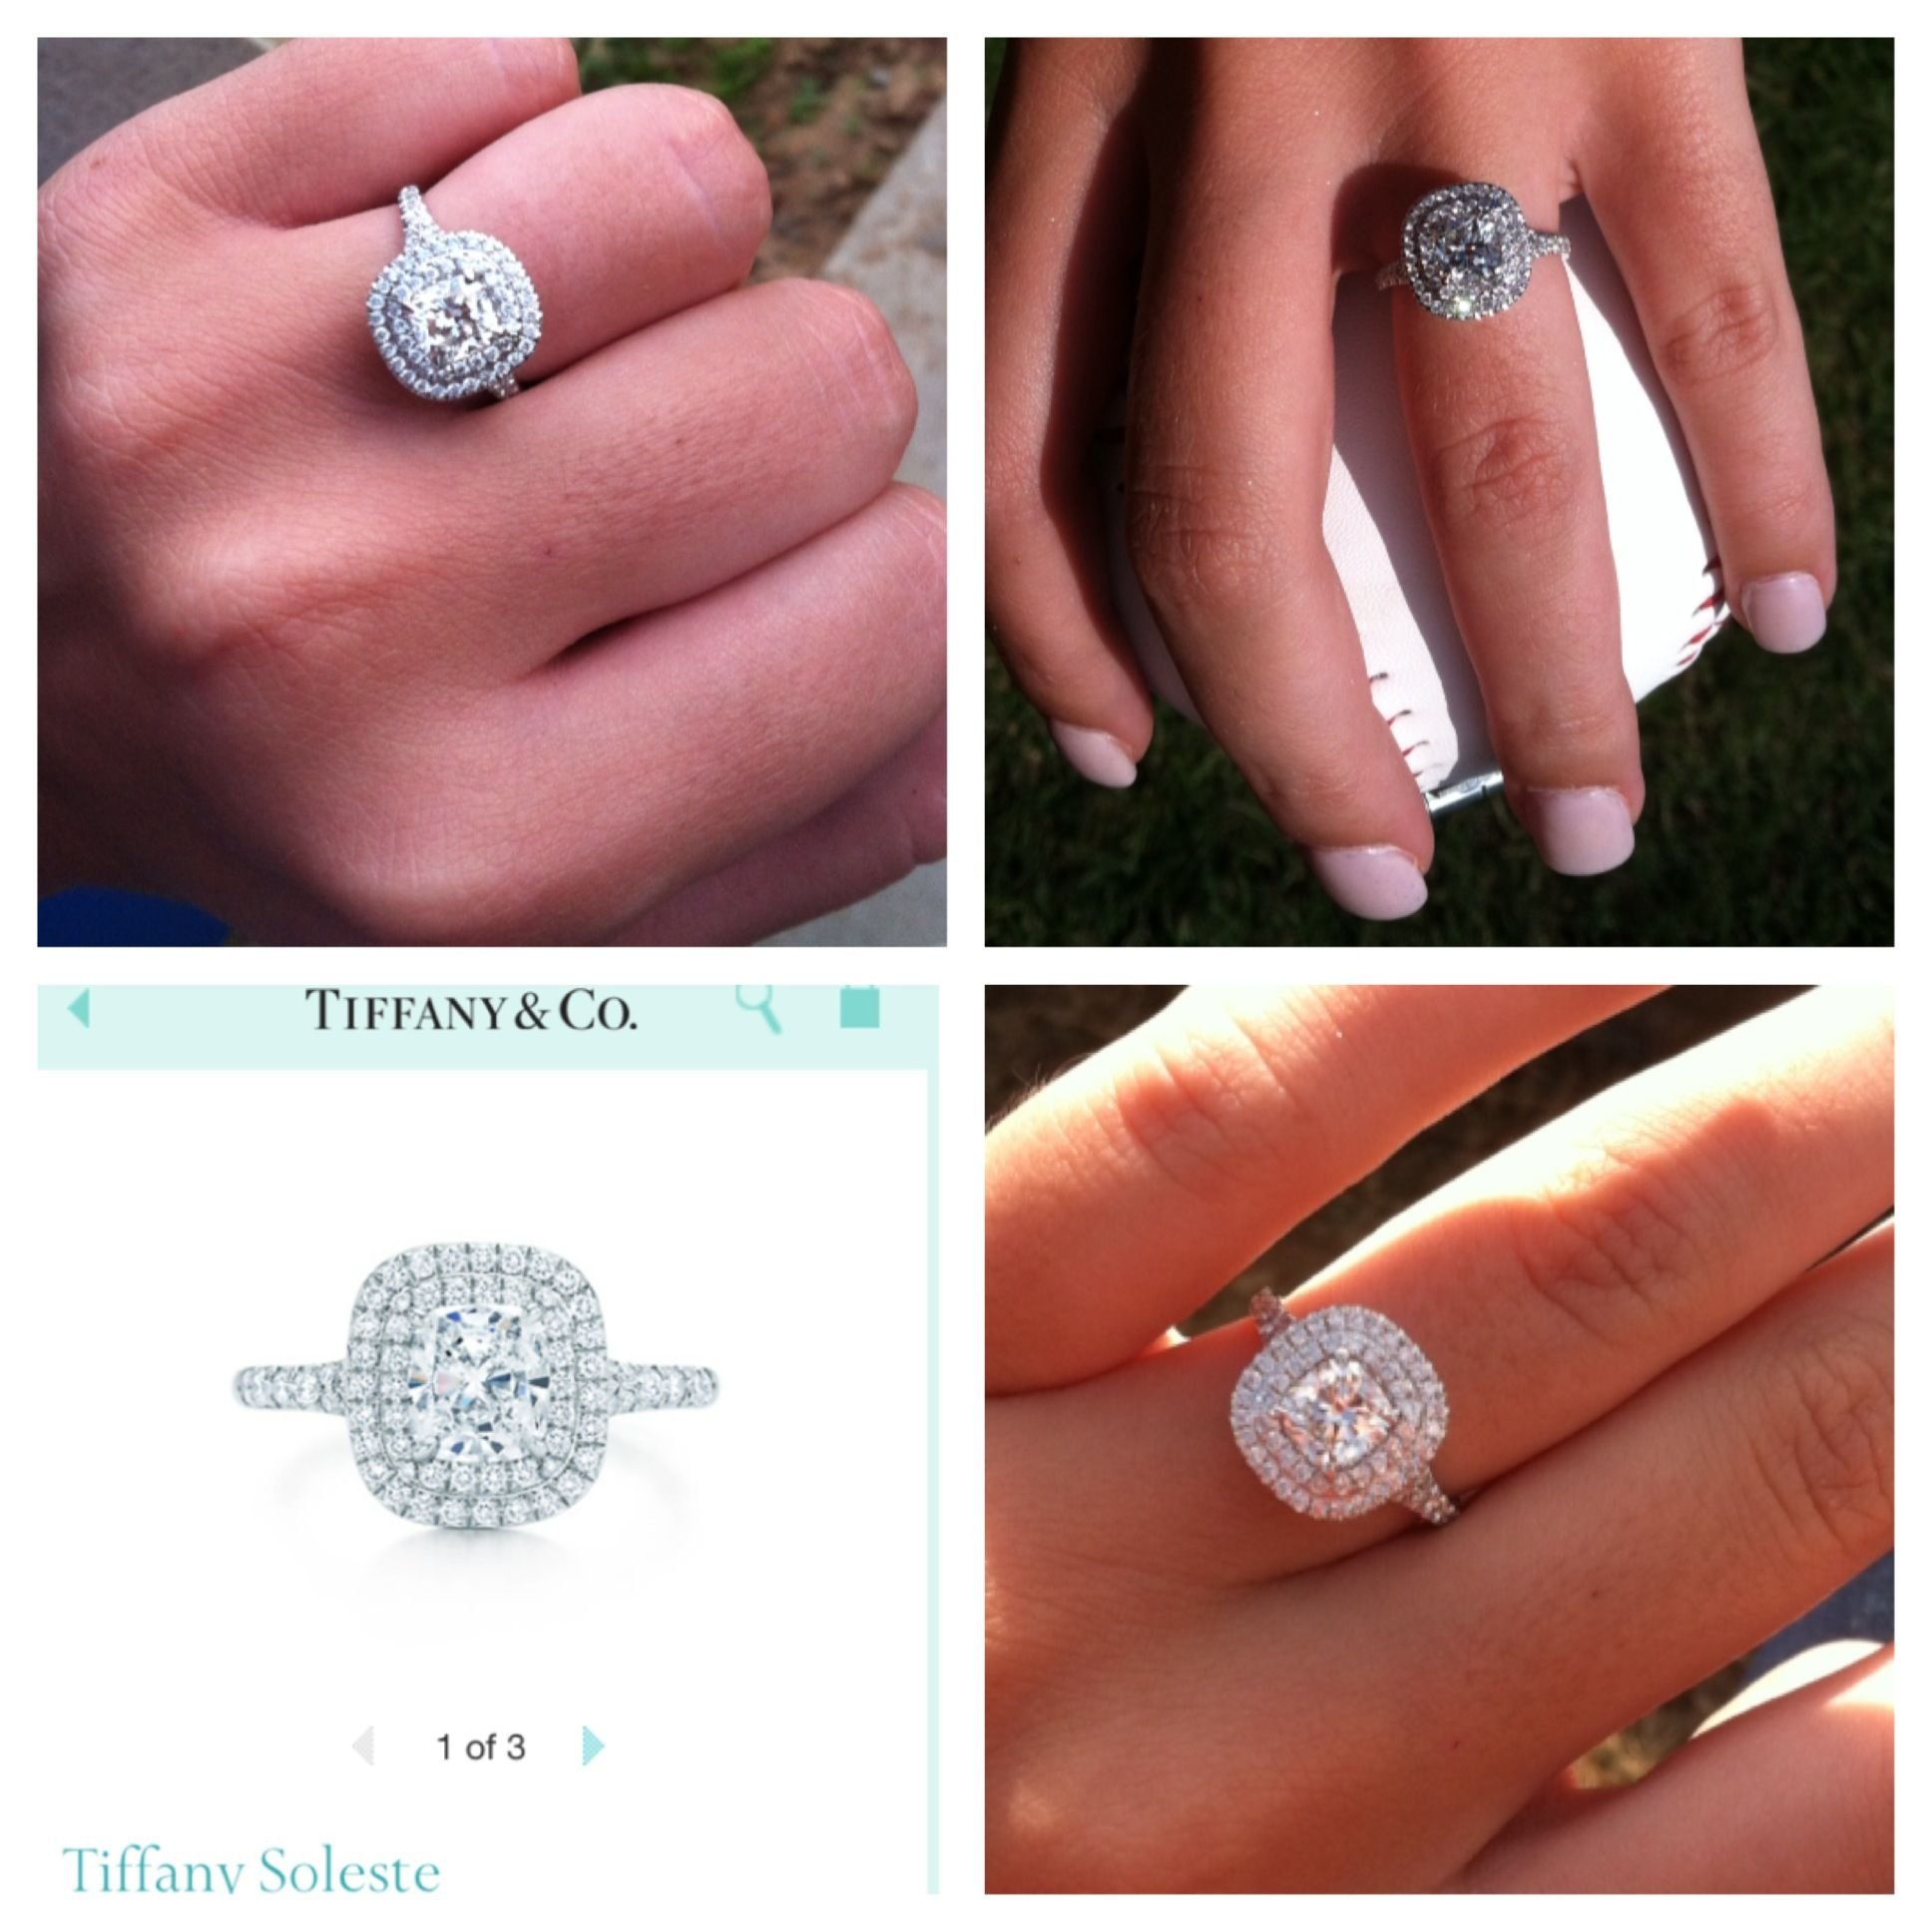 I WANT THIS RING! Tiffany engagement ring